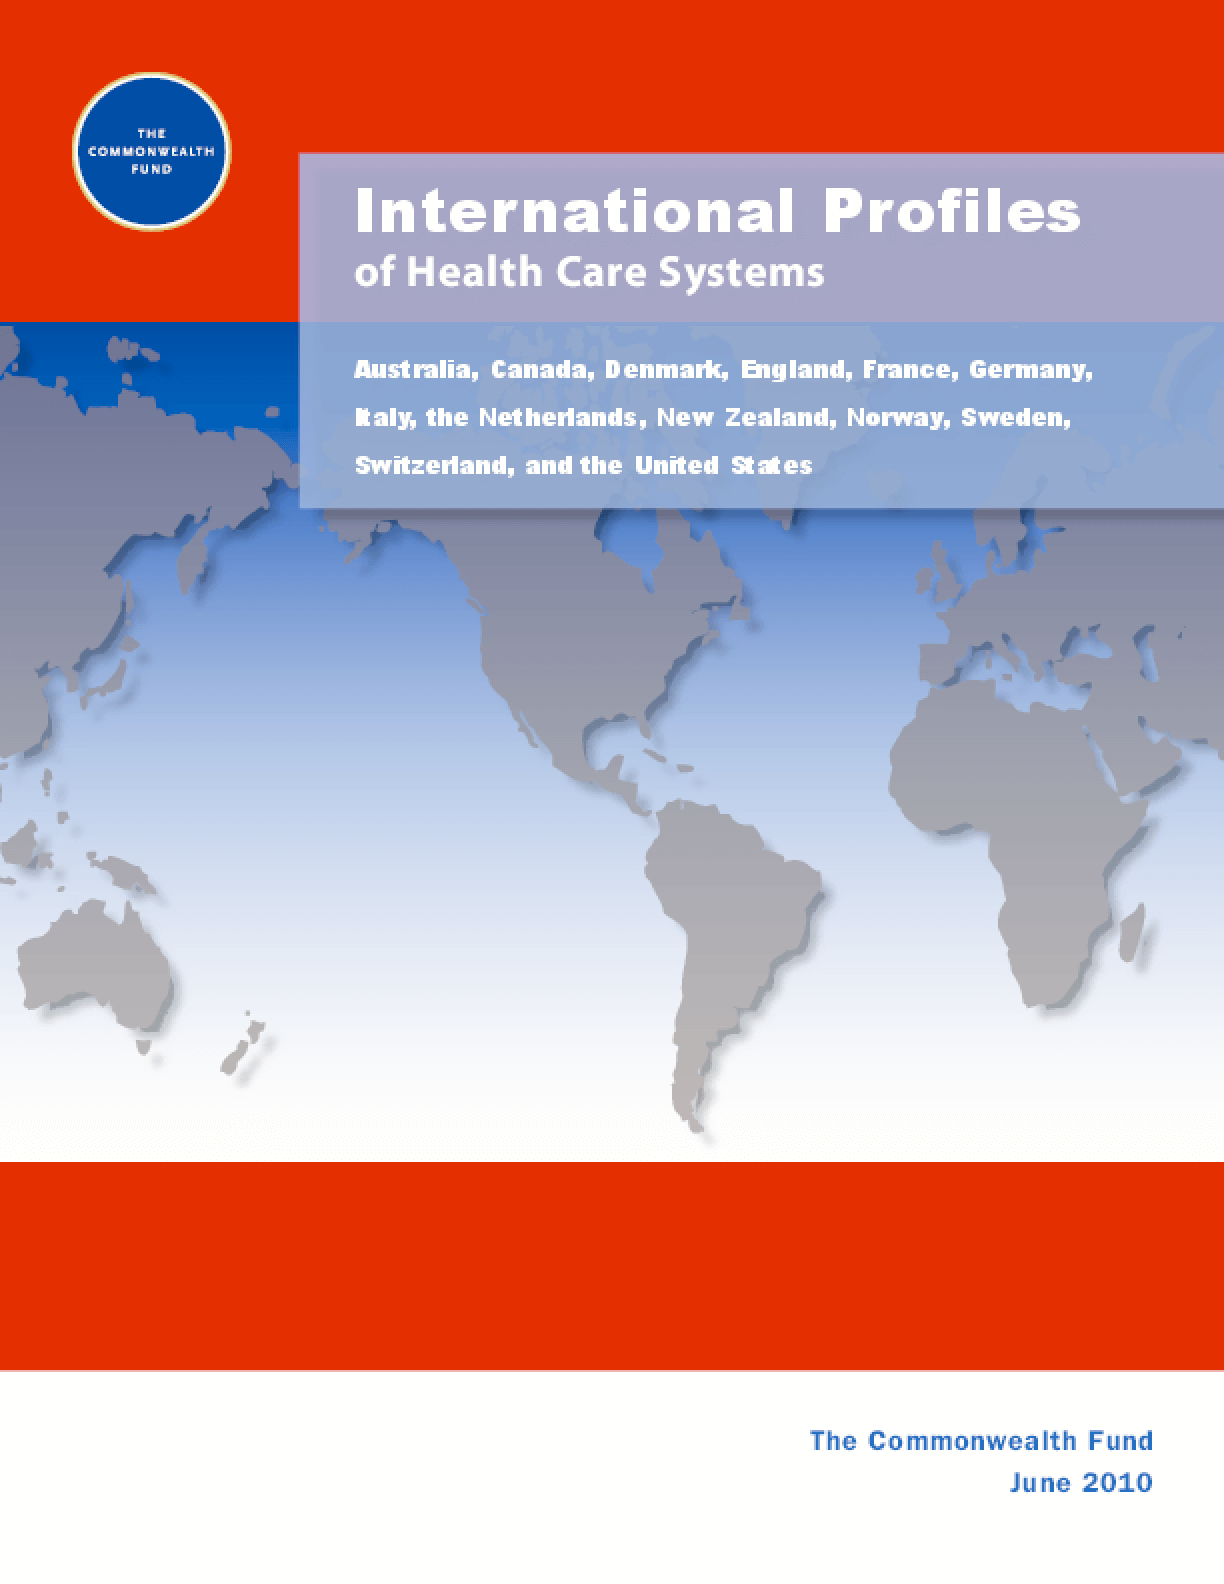 International Profiles of Health Care Systems